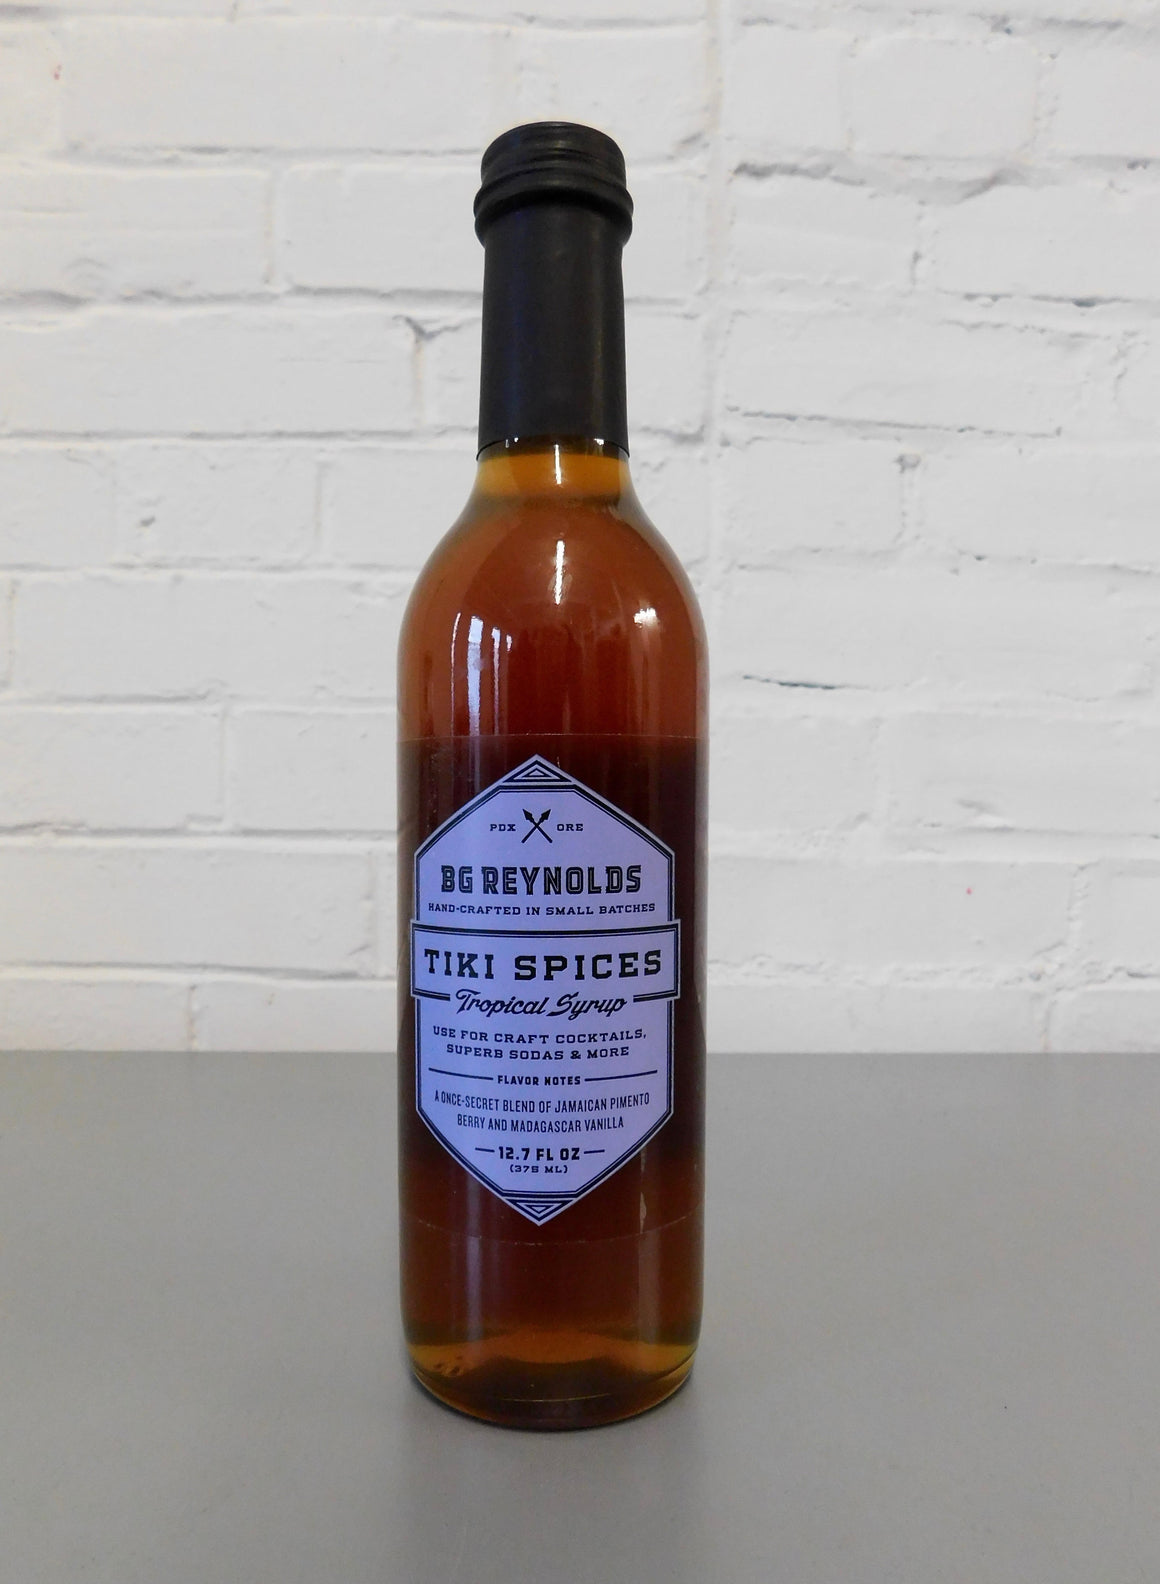 BG Reynolds Tiki Spices Tropical Syrup